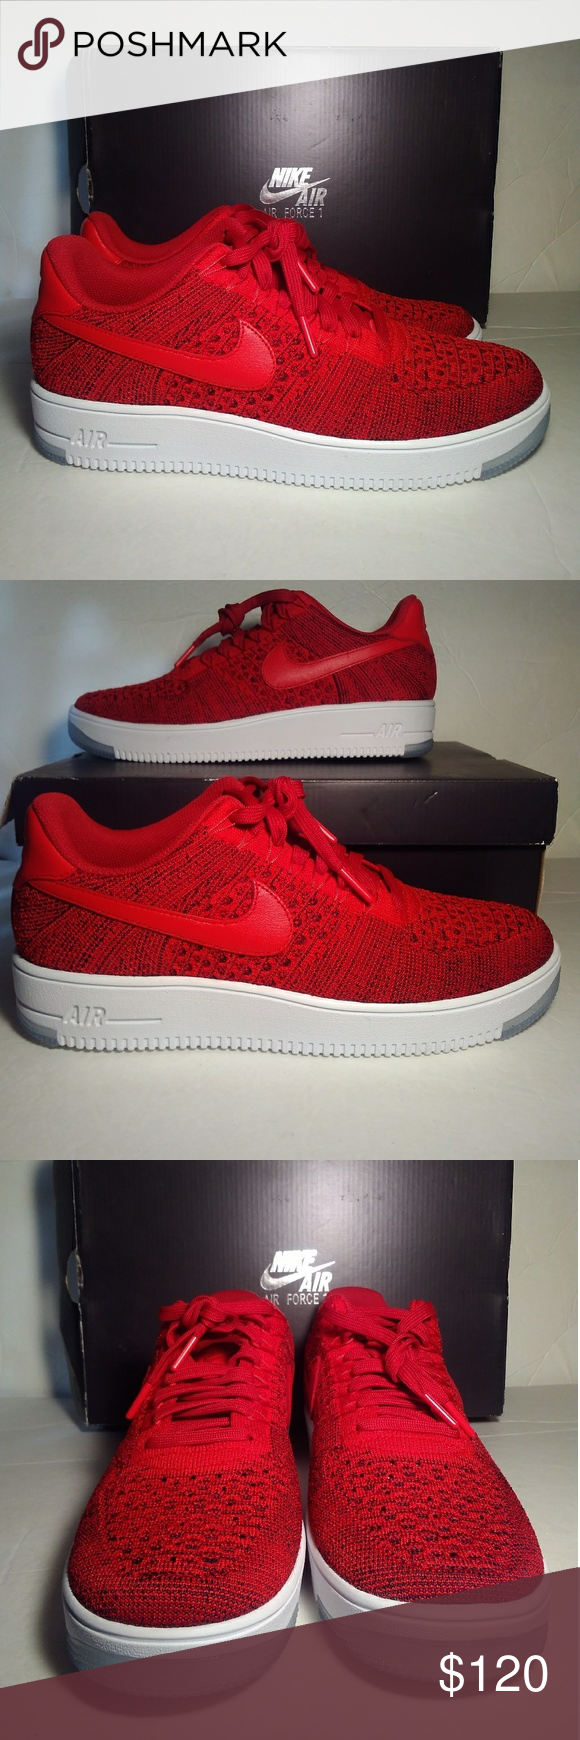 1b89eac8e907 Nike Air Force 1 Ultra Flyknit Low Men Size 10.5 Nike Air Force 1 Ultra  Flyknit Low 817419-600 University Red-White Men Sz 10.5 Nike Shoes Sneakers